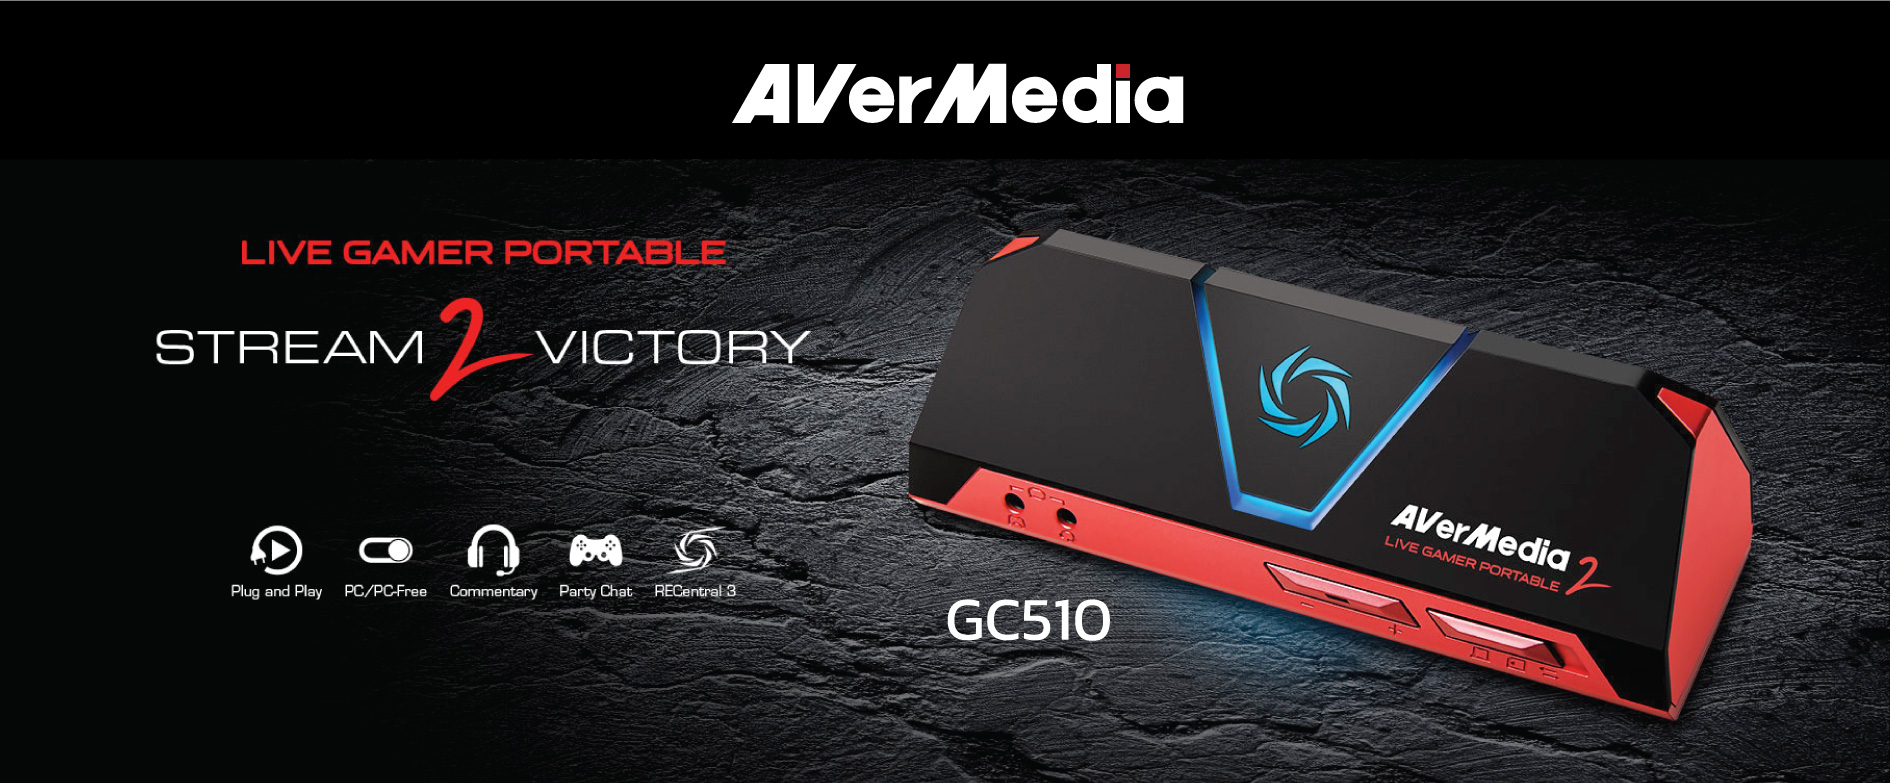 Live Gamer Portable II GC510